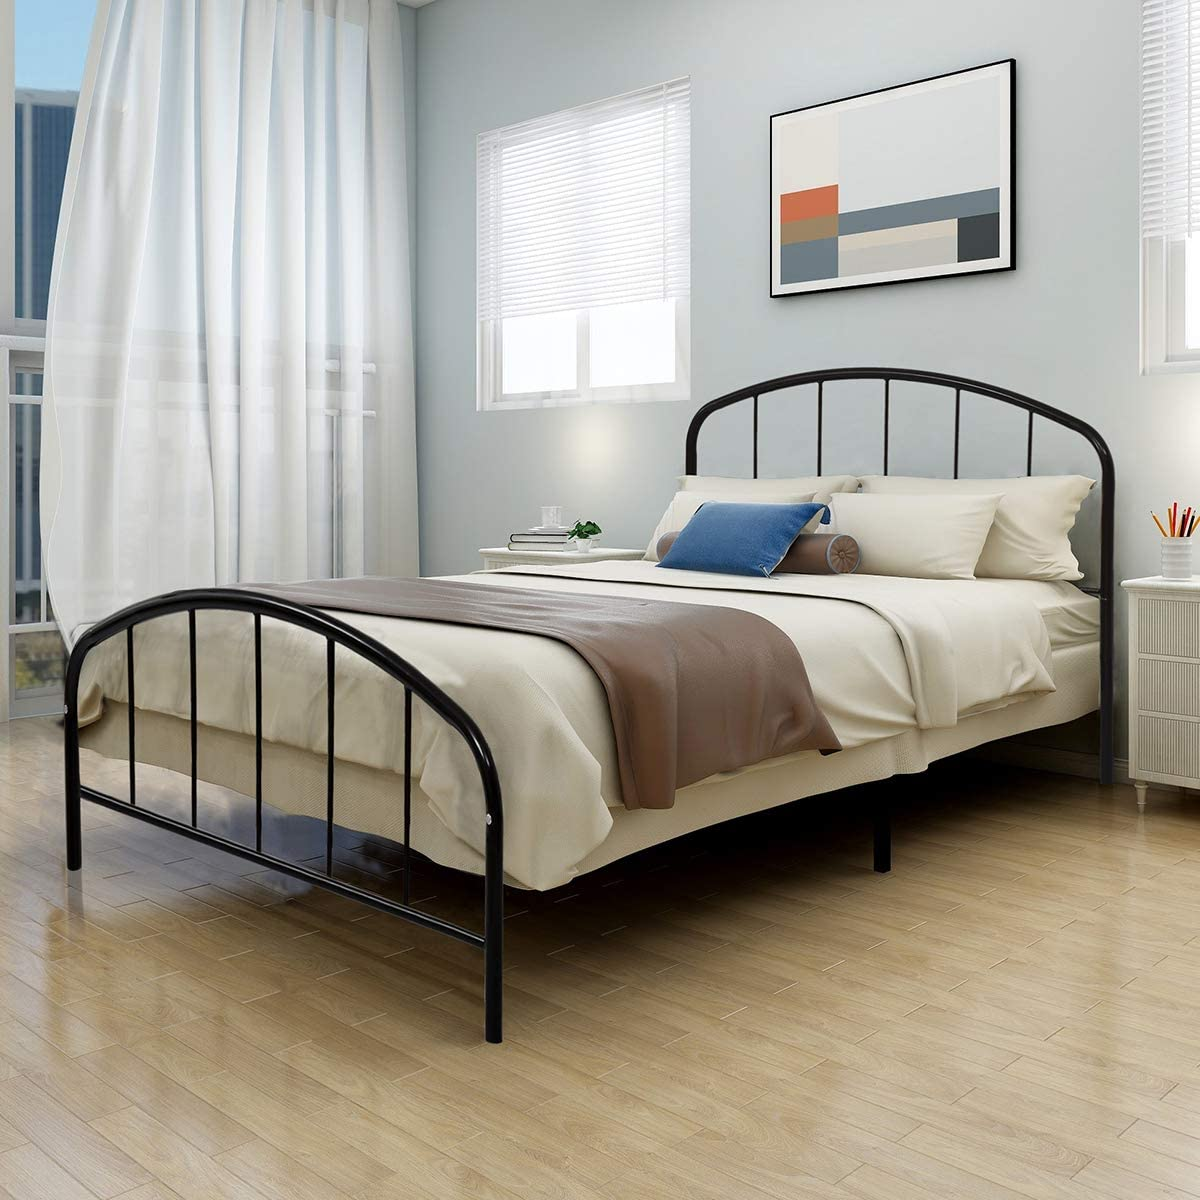 Better Than a Box Spring Bed Frame – Queen